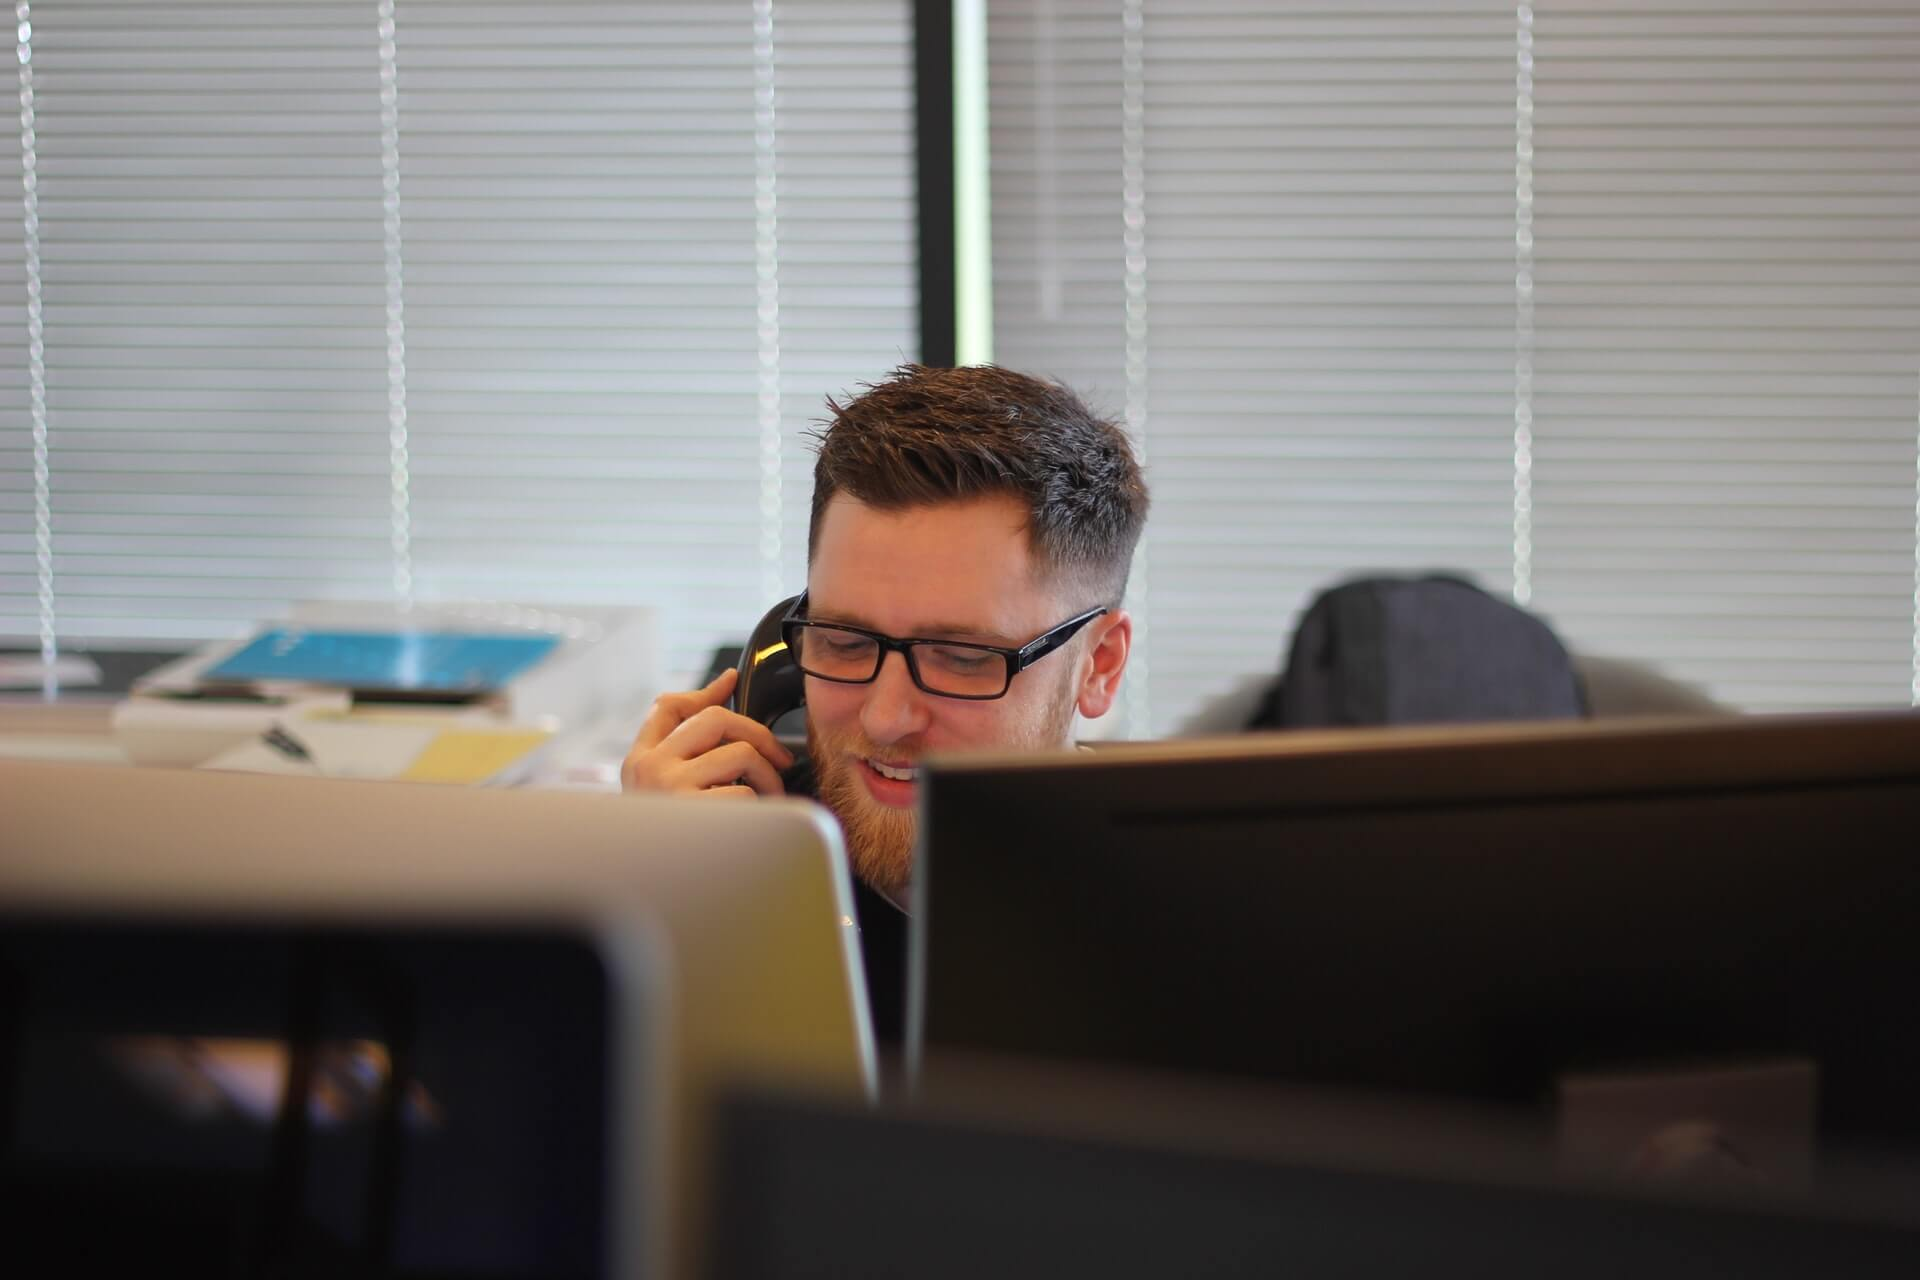 man on the phone while in front of two screens